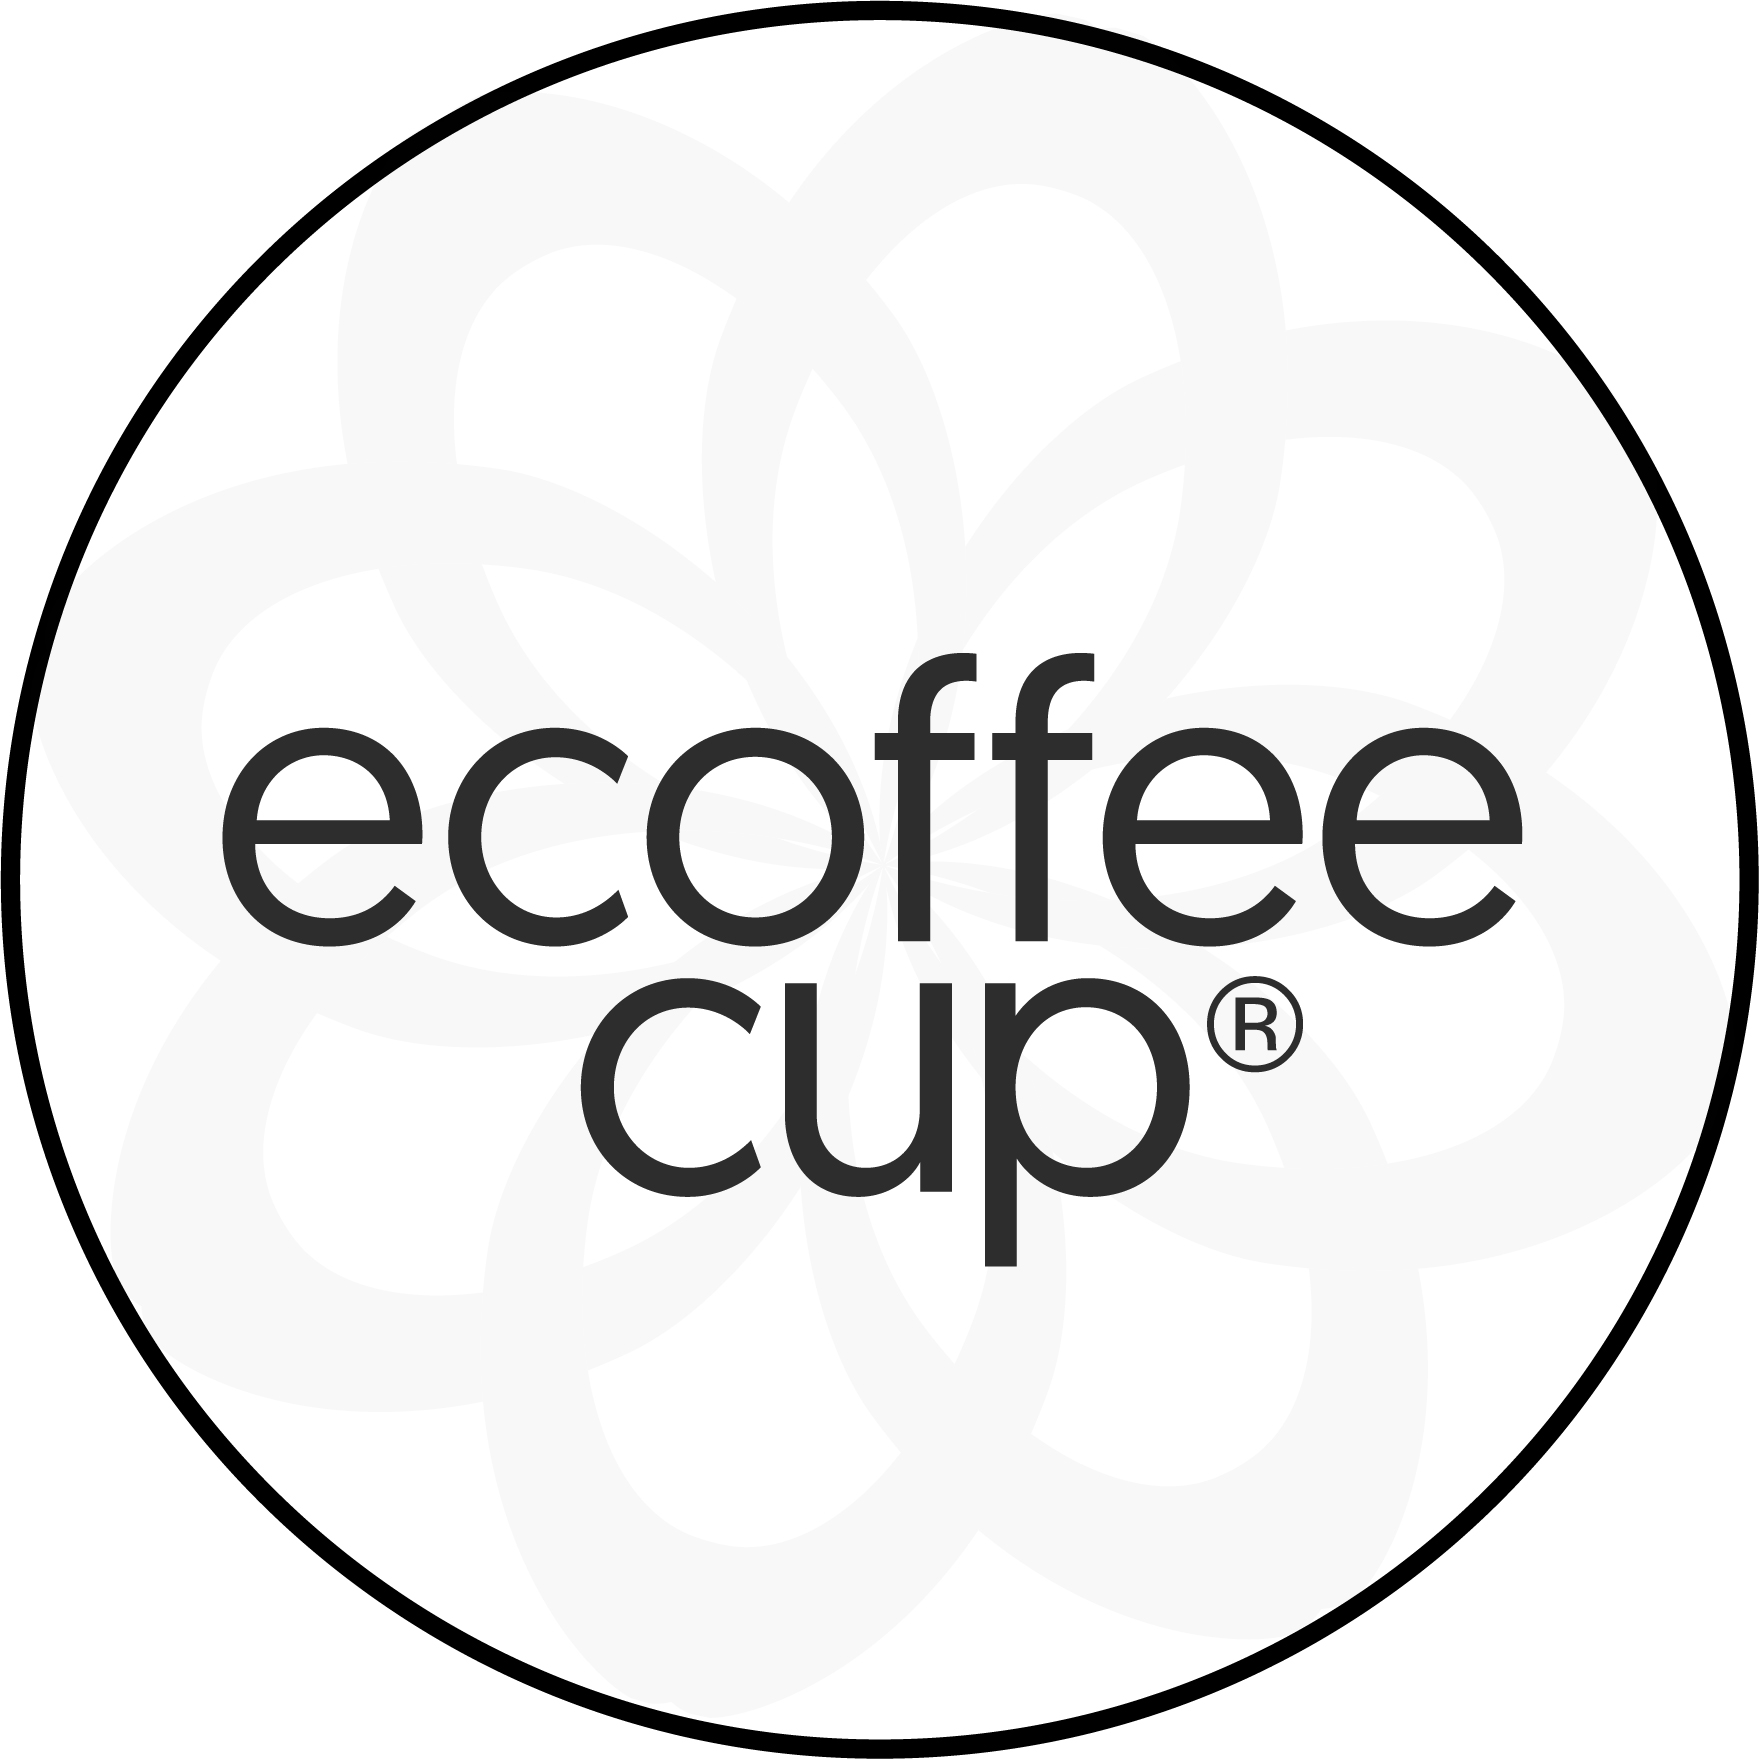 5 Minutes eCoffee